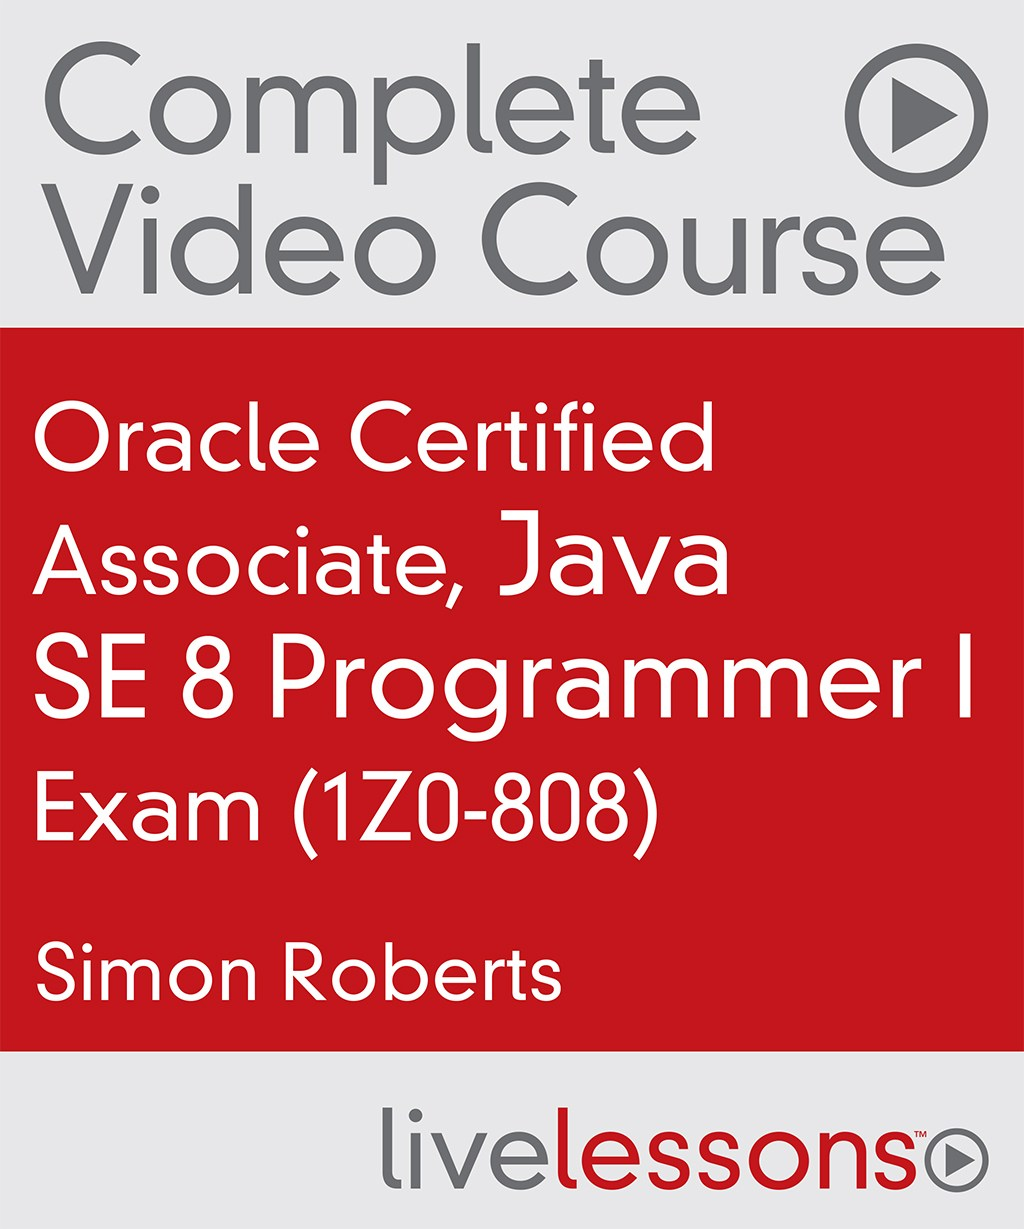 Oracle Certified Associate, Java SE 7 Programmer Exam (1Z0-803) Complete Video Course